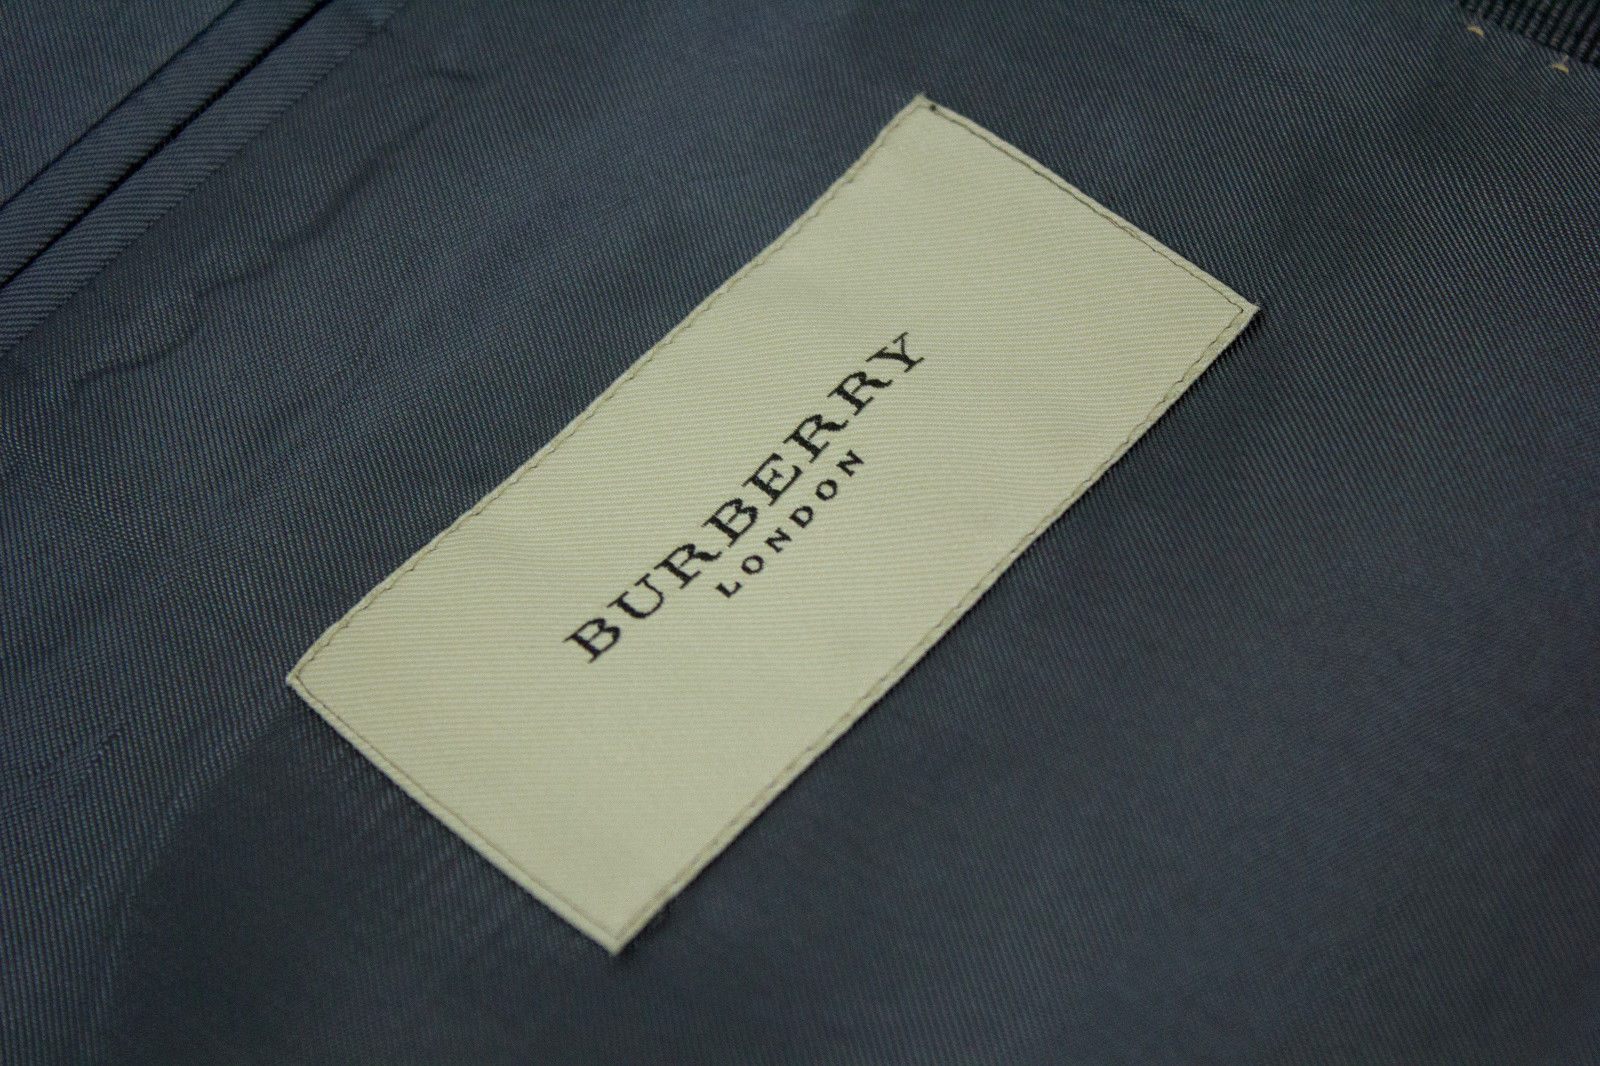 BURBERRY Super 130's Wool Gray 2 Button Blazer US 44S, EU 27 - secondfirst